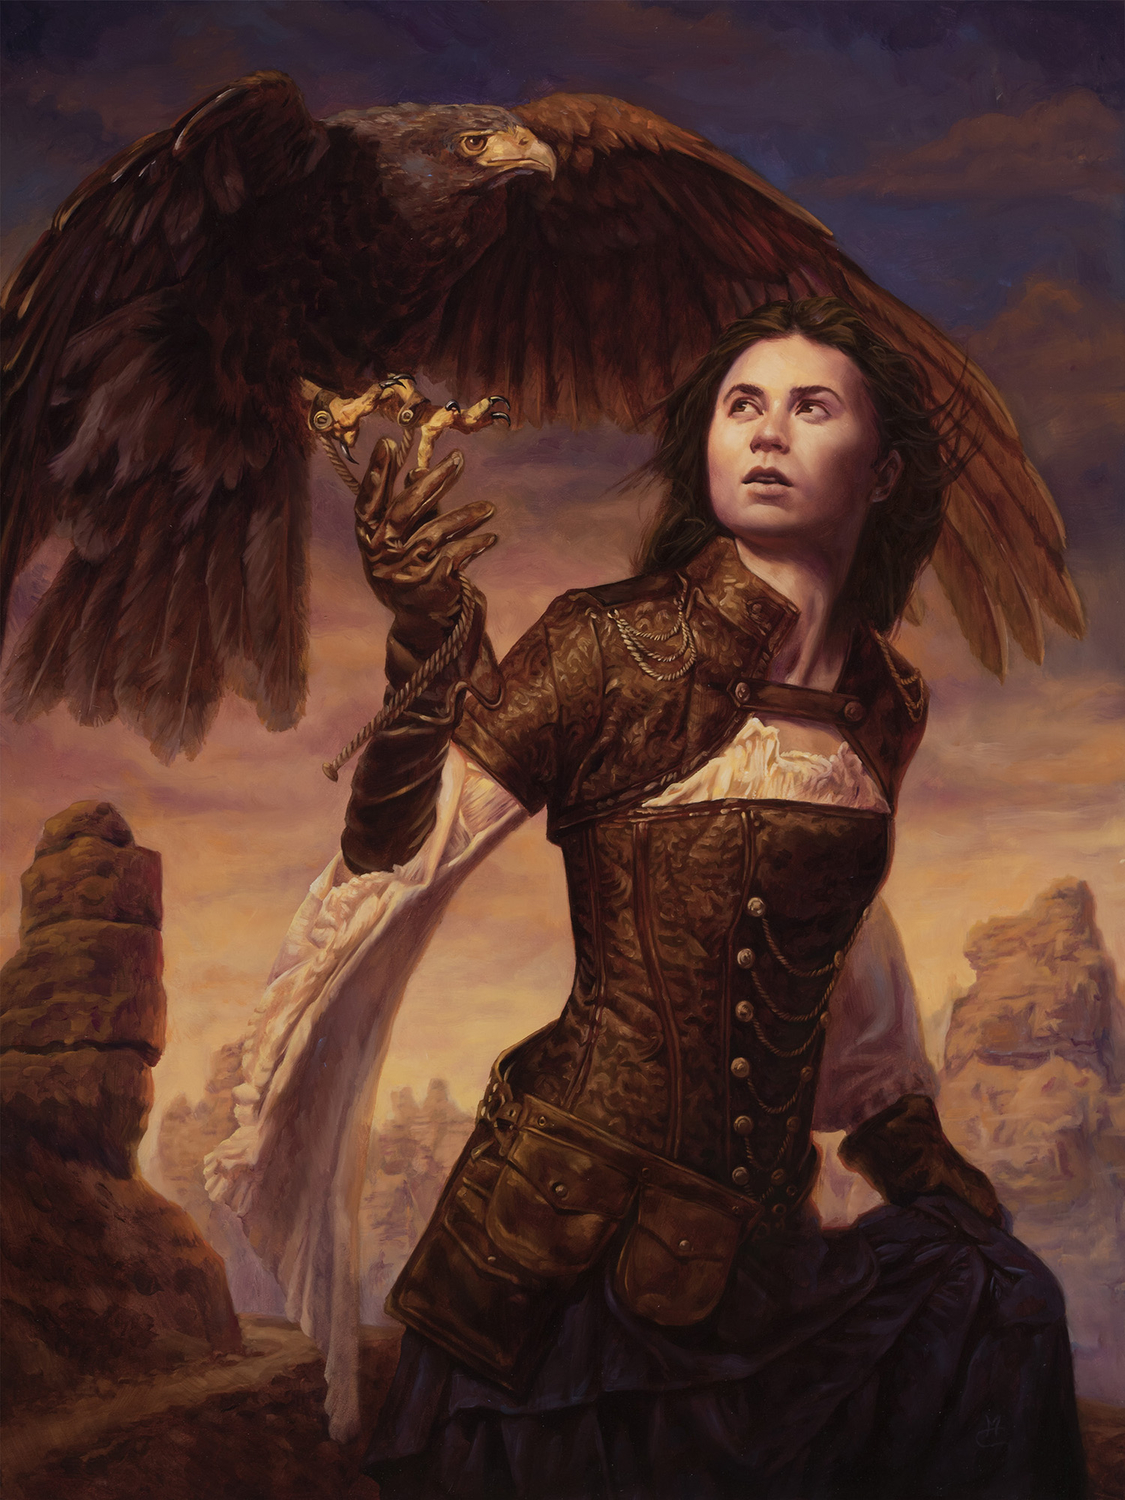 Huntress of the Sky Artwork by Michael C. Hayes